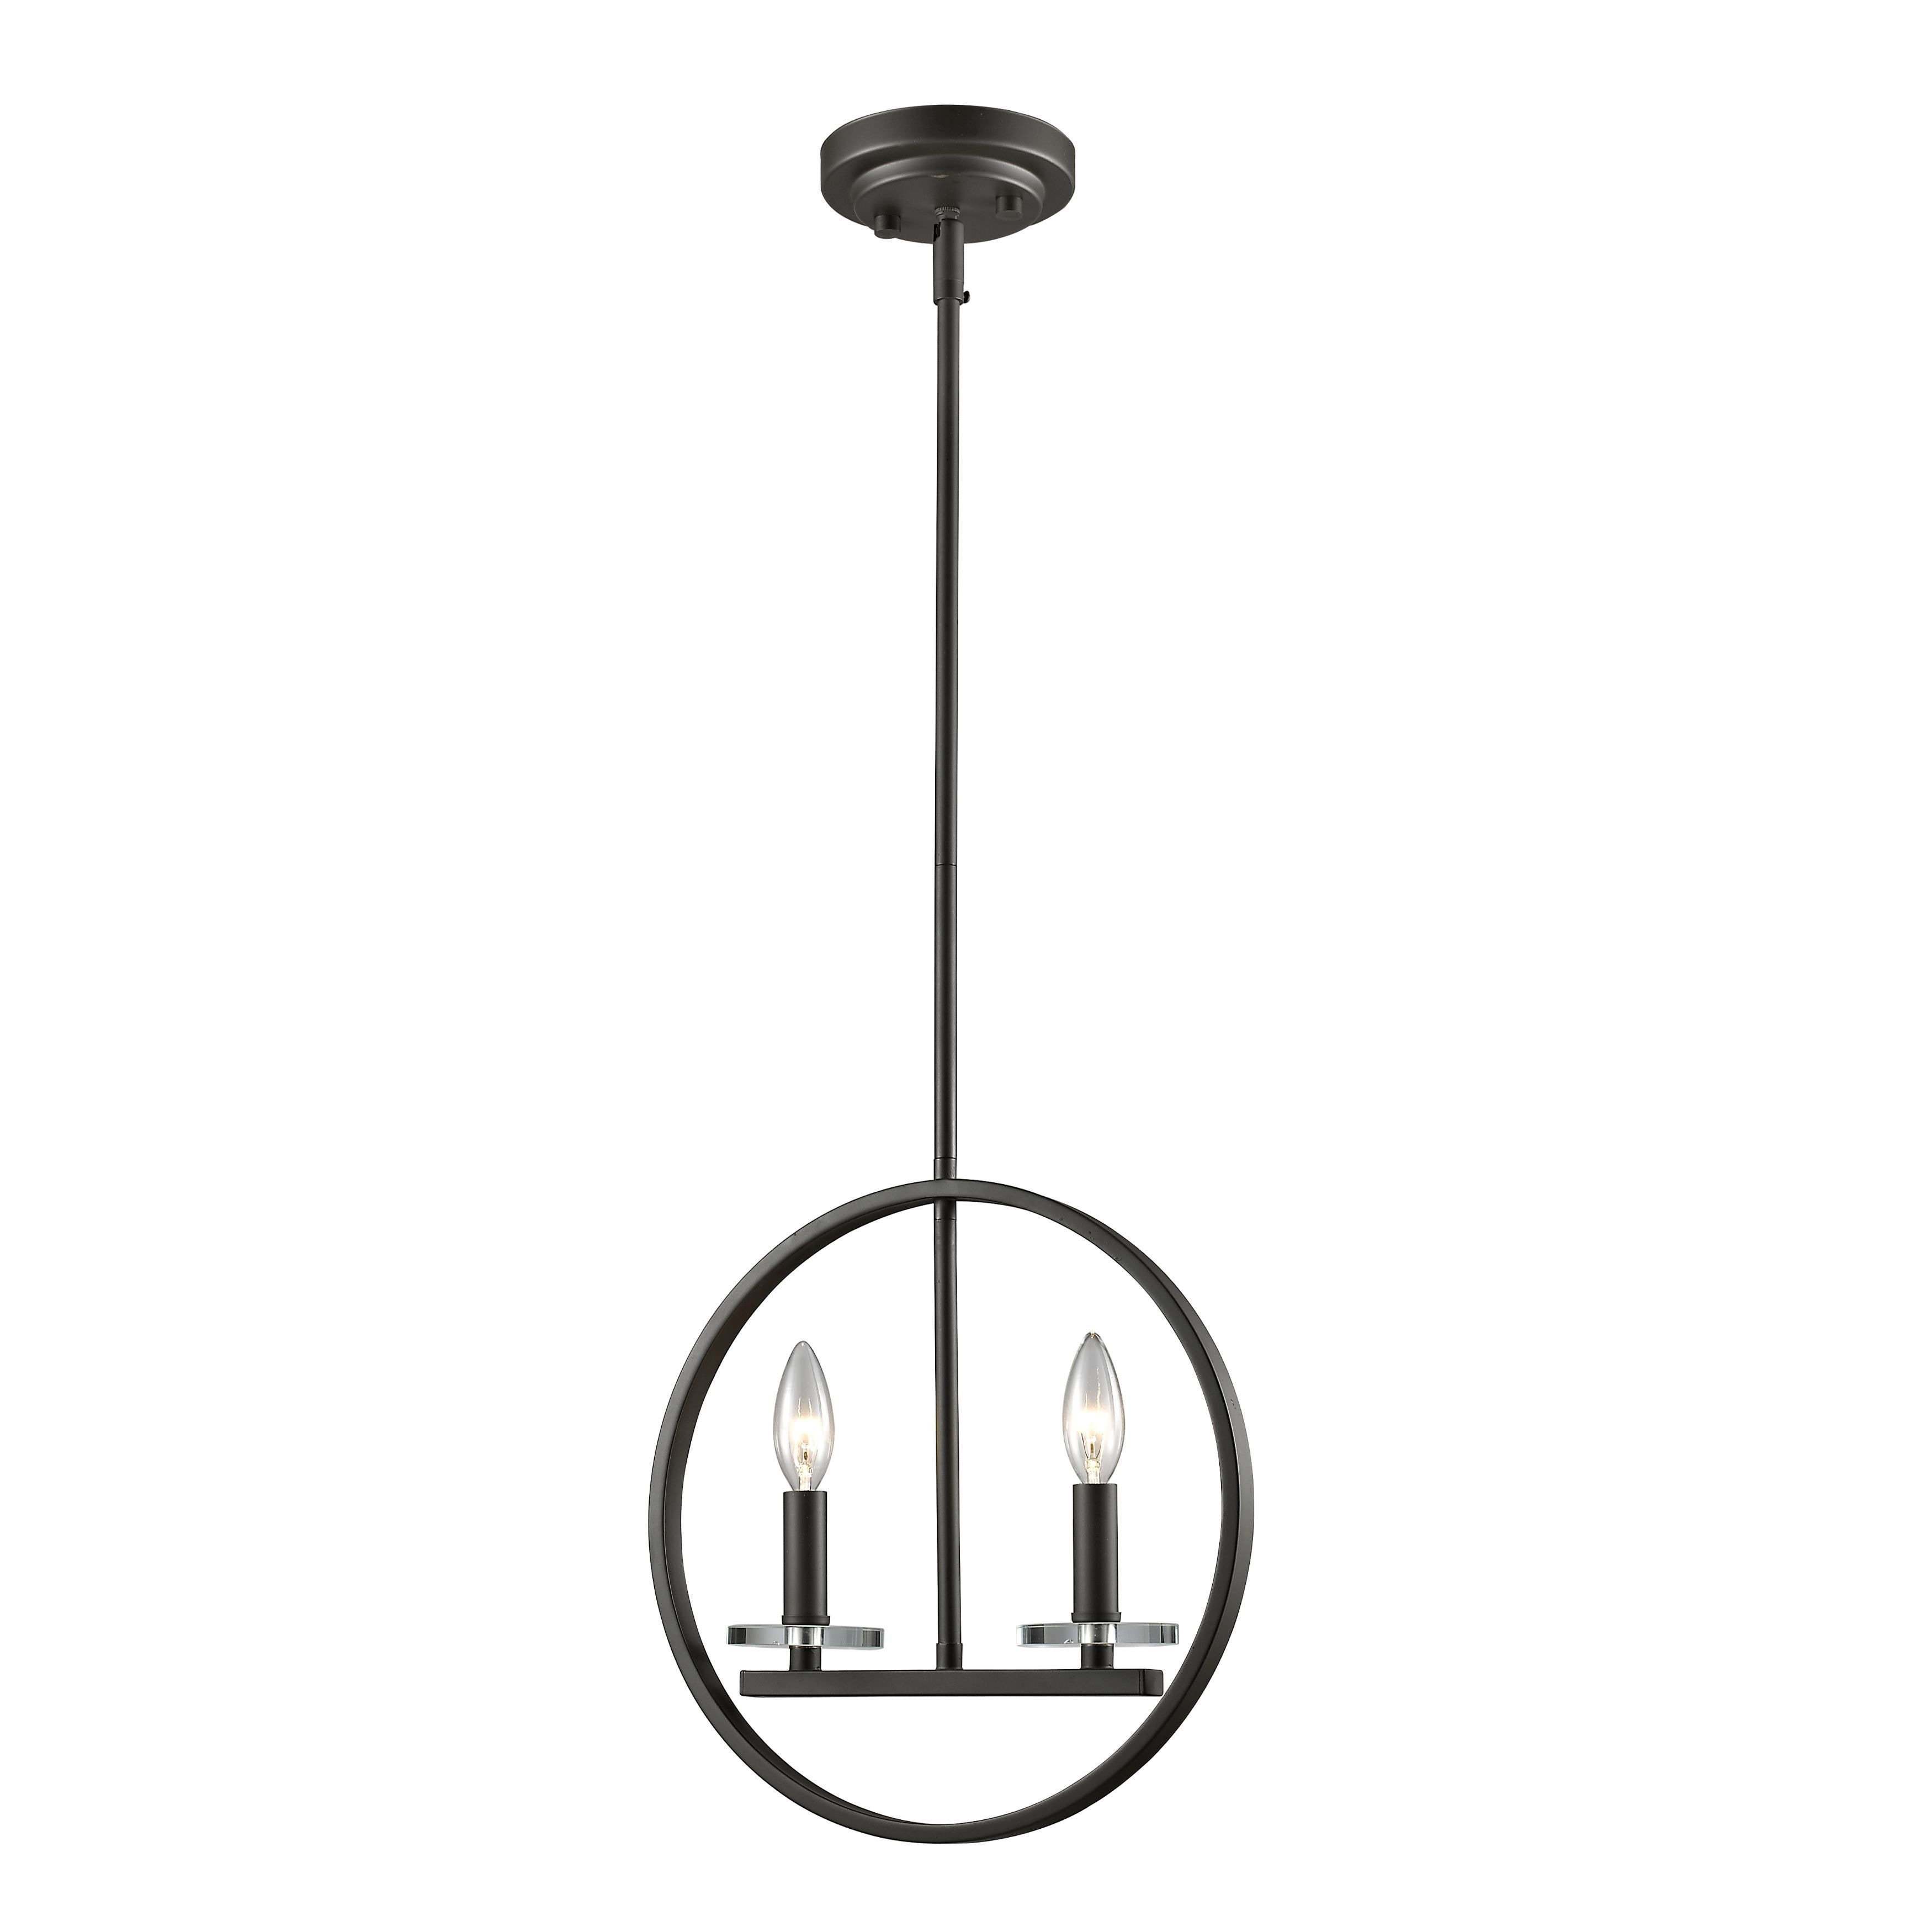 Shop Avery Home Lighting Verona 2-light Mini Pendant in Brushed Nickel - Free Shipping Today - Overstock.com - 11190723  sc 1 st  Overstock.com & Shop Avery Home Lighting Verona 2-light Mini Pendant in Brushed ...